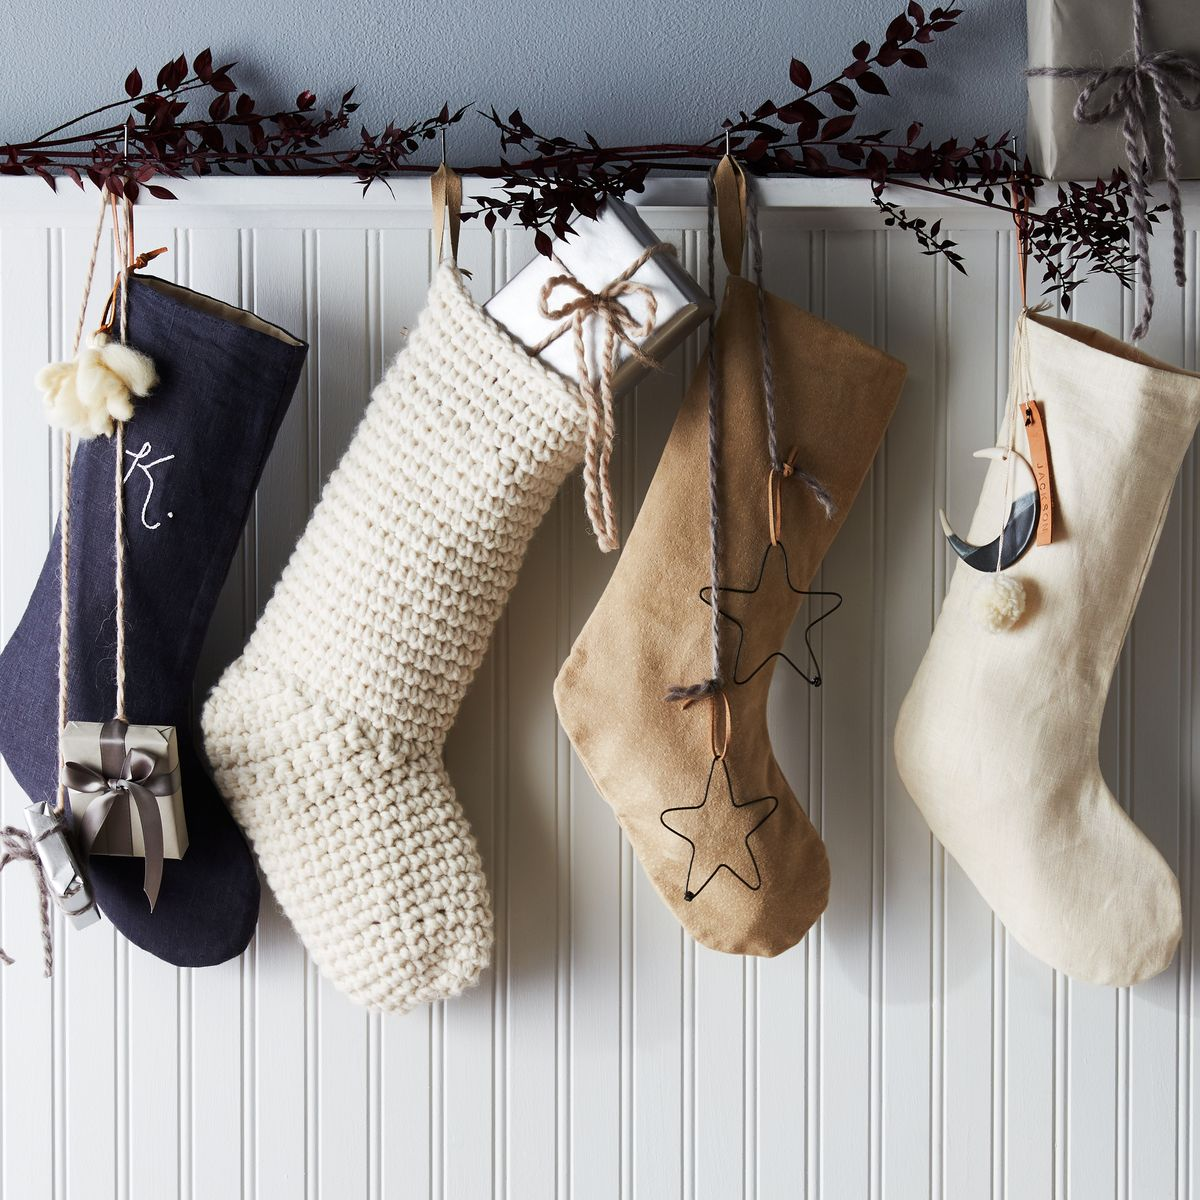 History Of Christmas Stockings Why Do We Hang Stockings At Christmas